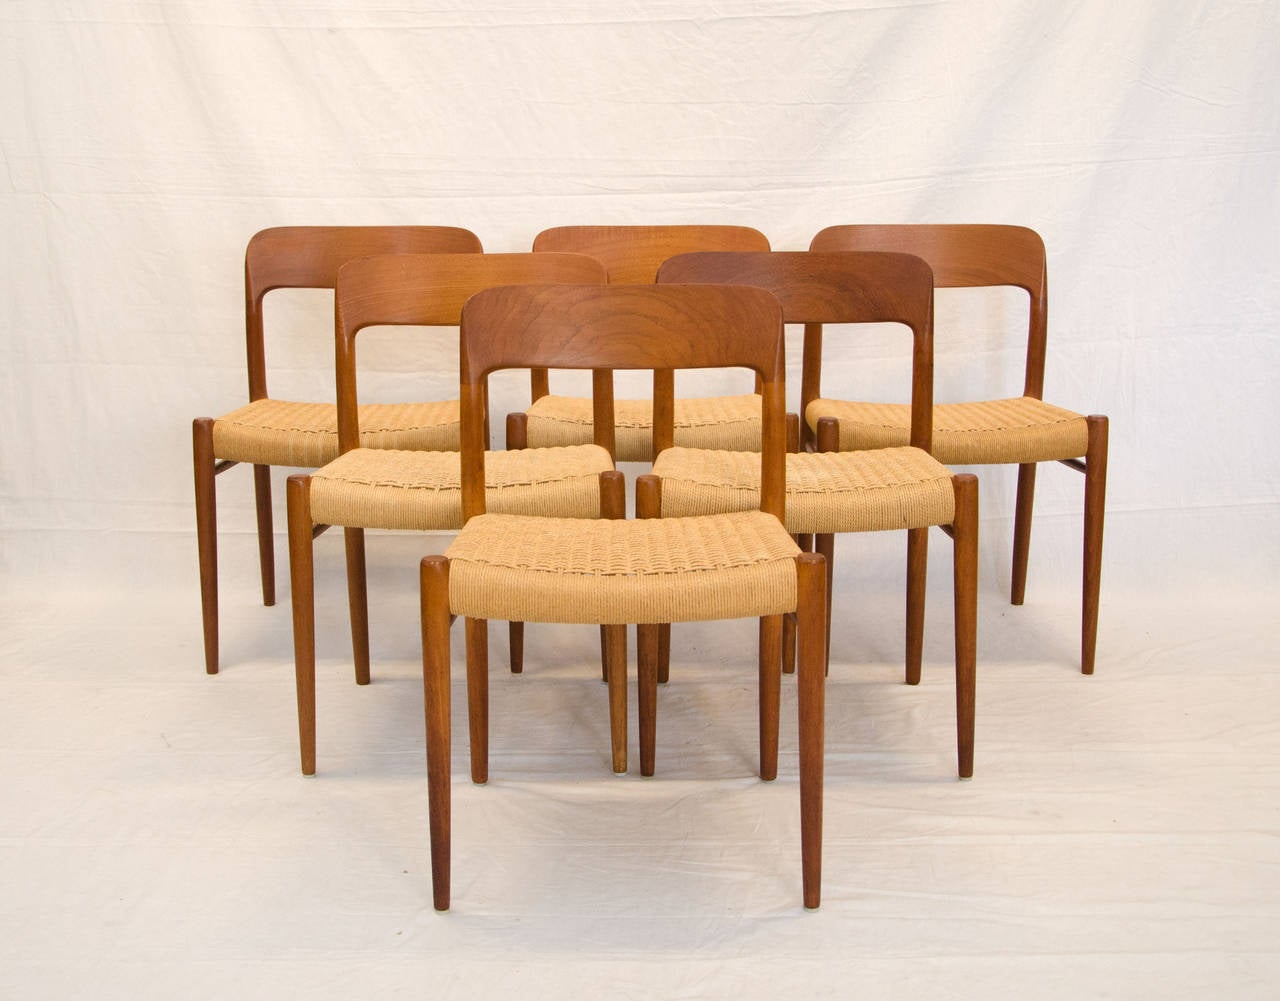 four danish teak dining chairs niels moller 75 at 1stdibs. Black Bedroom Furniture Sets. Home Design Ideas